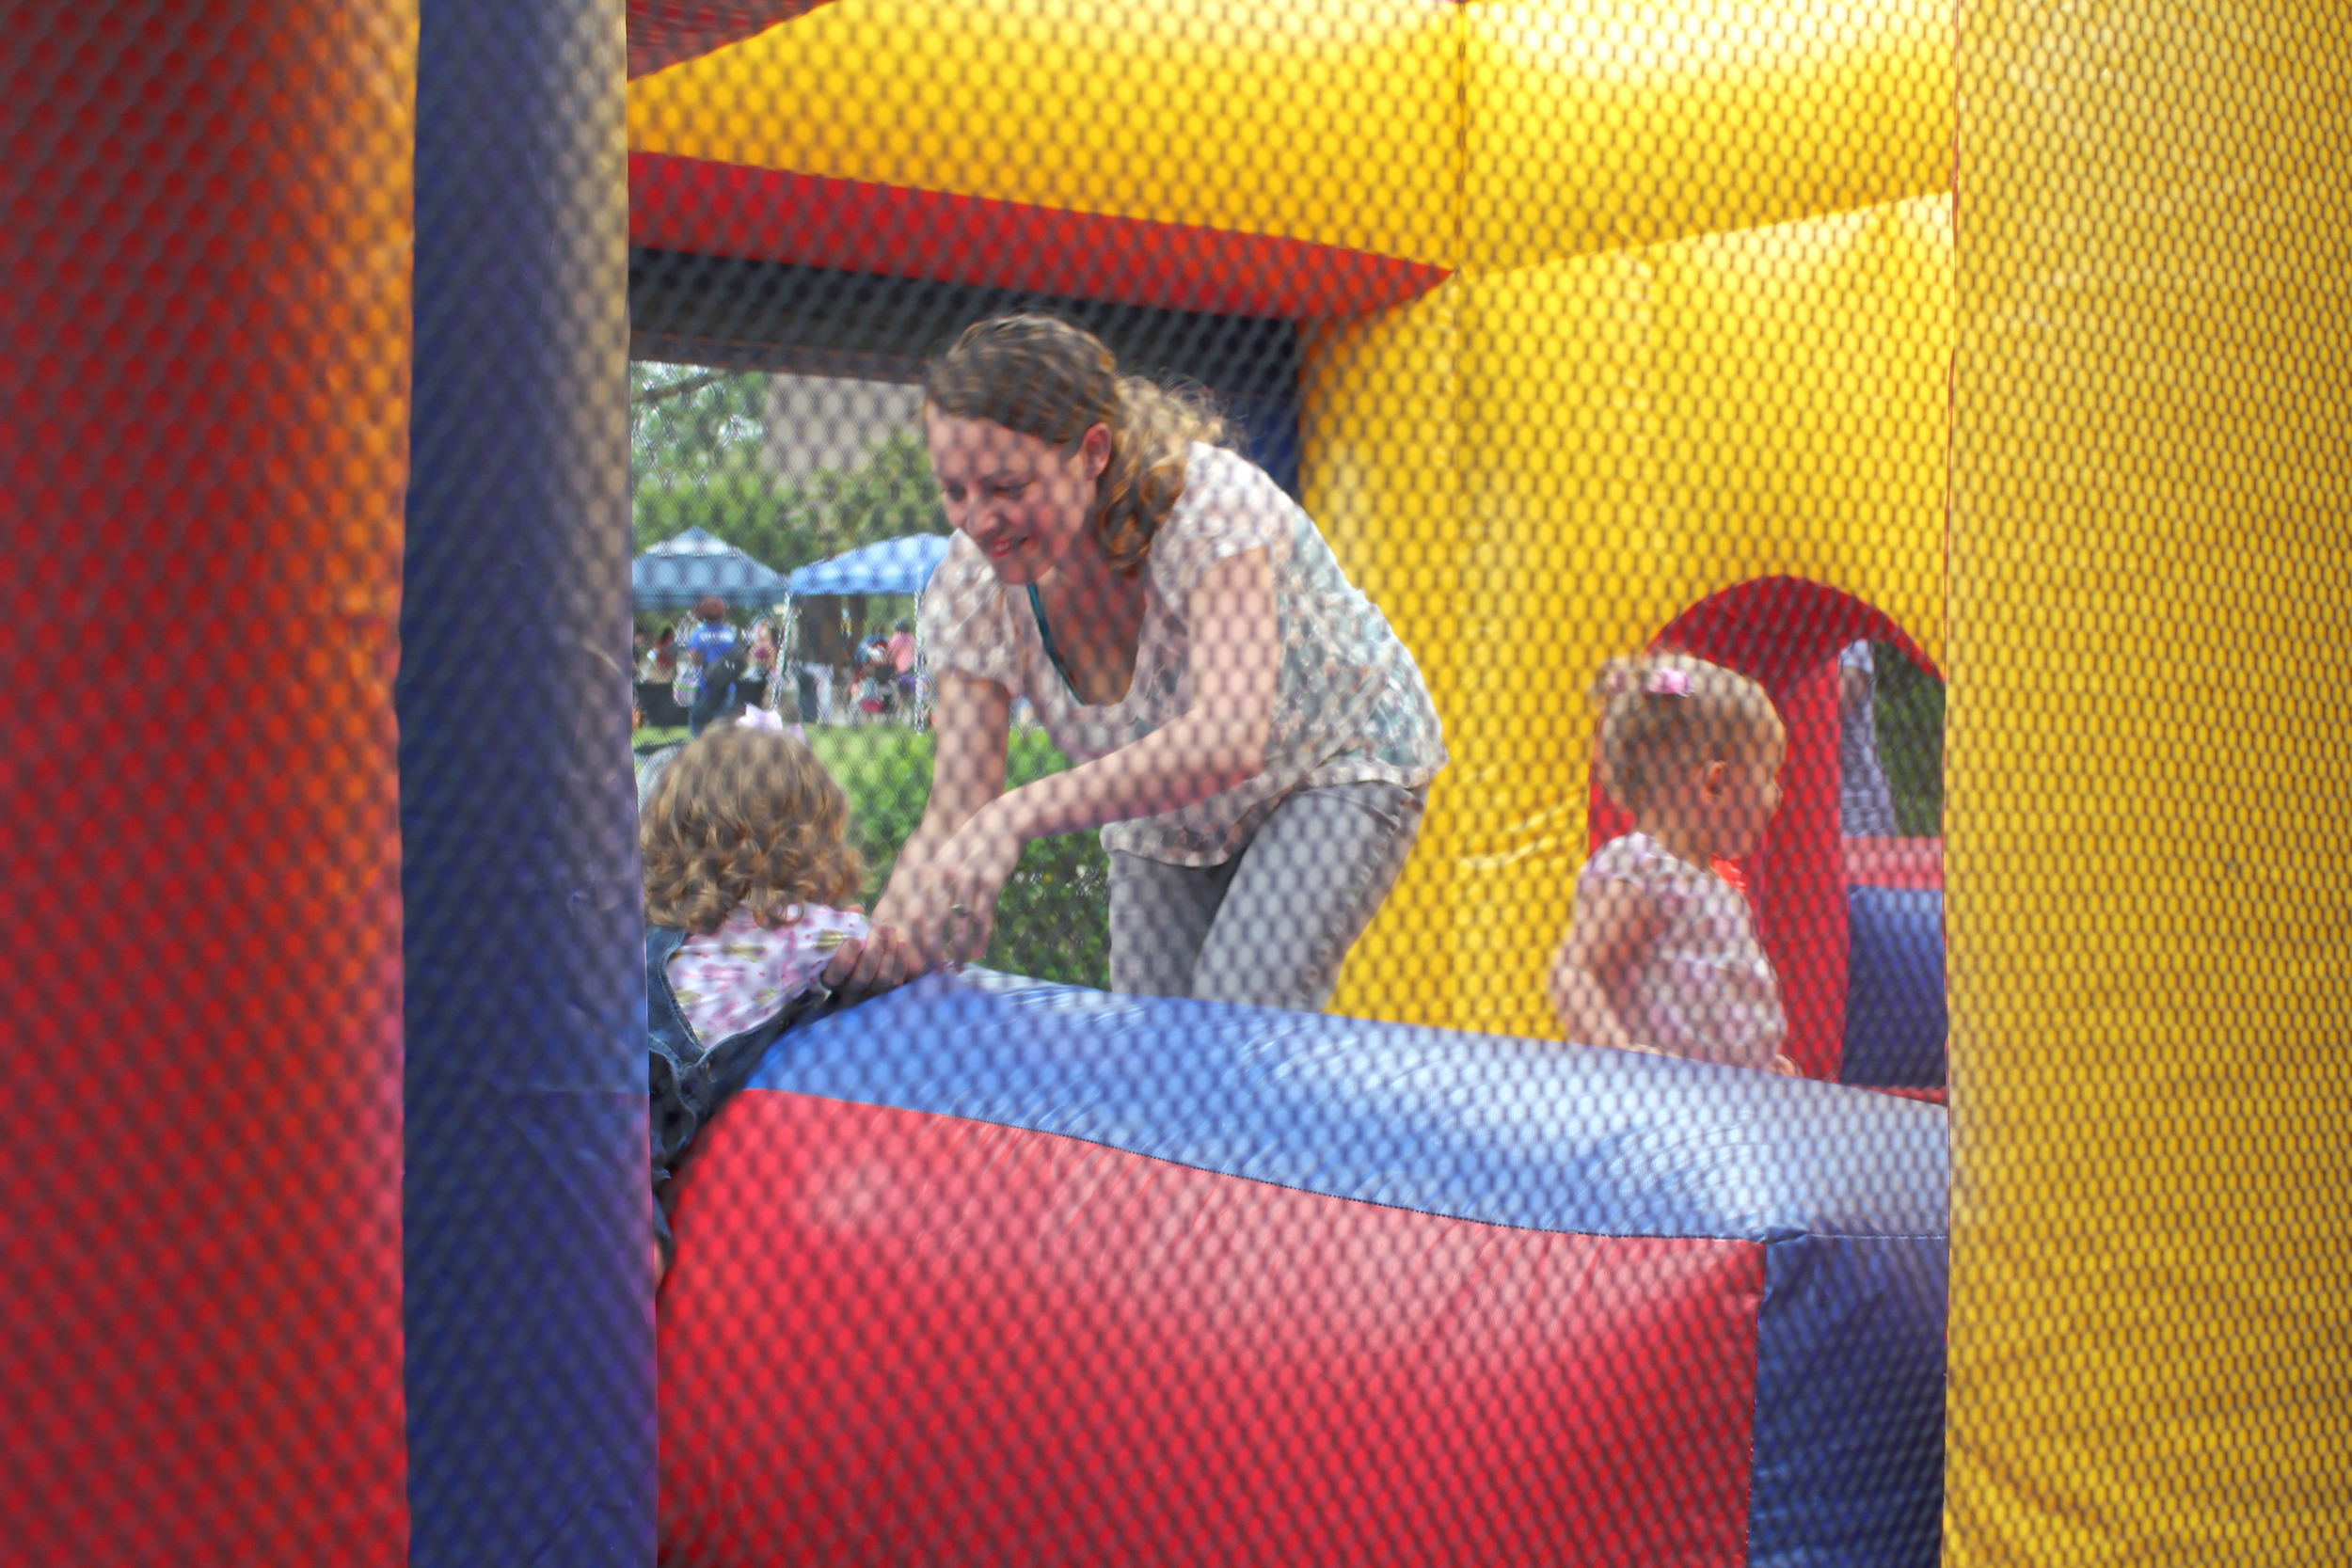 Avi, me, and Kenzie in the bounce house.